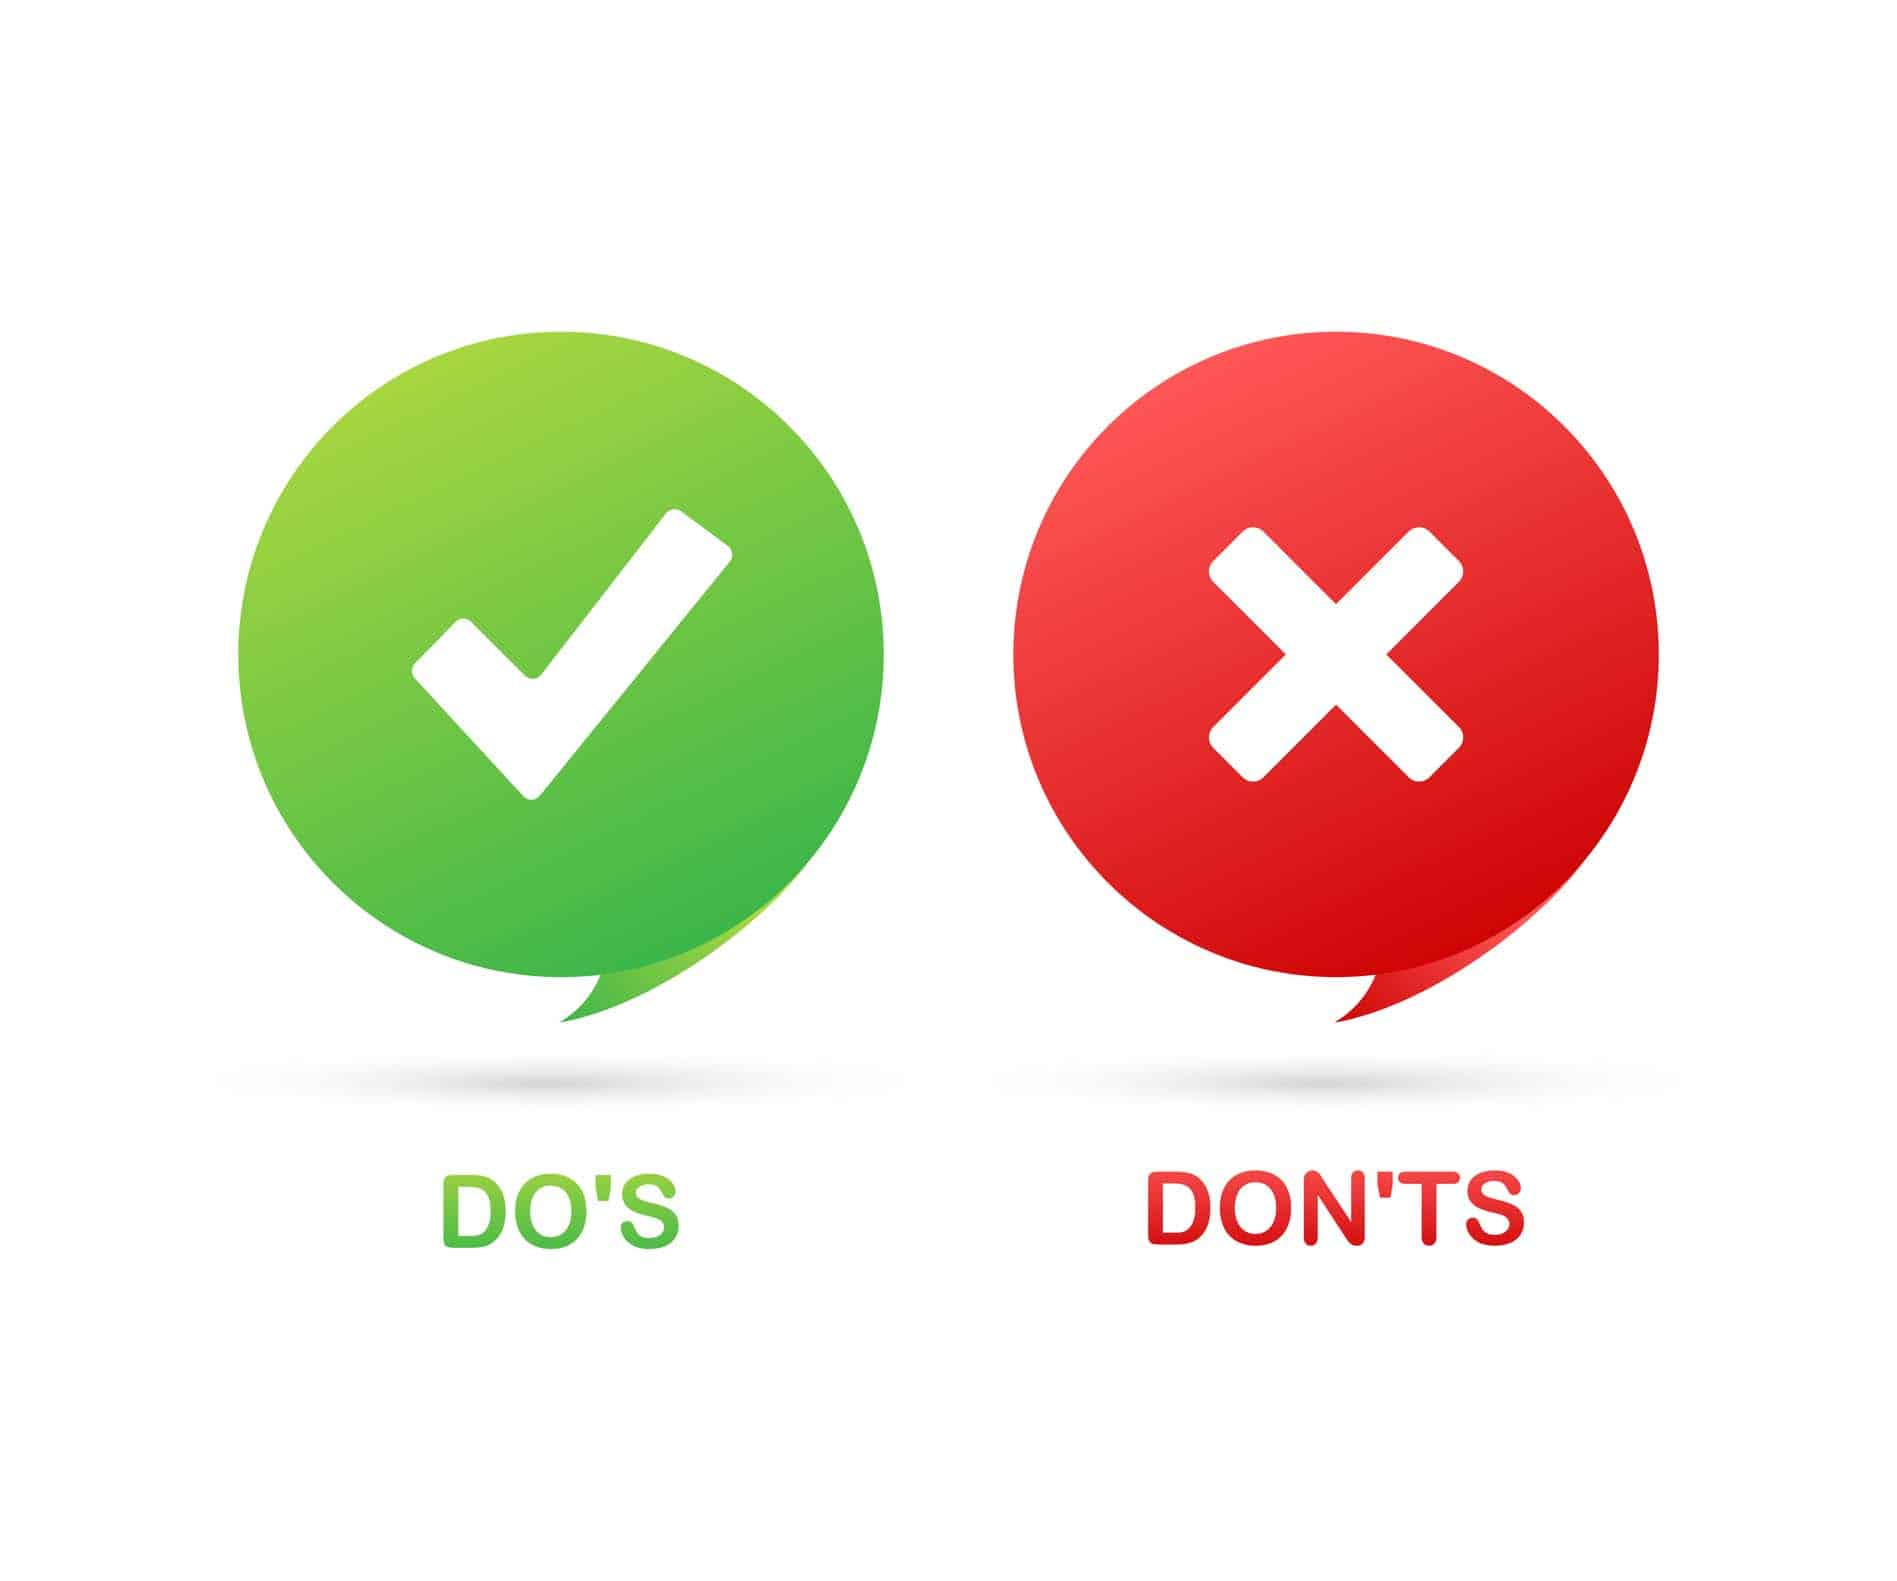 Do's and Don'ts like thumbs up or down. flat simple thumb up symbol